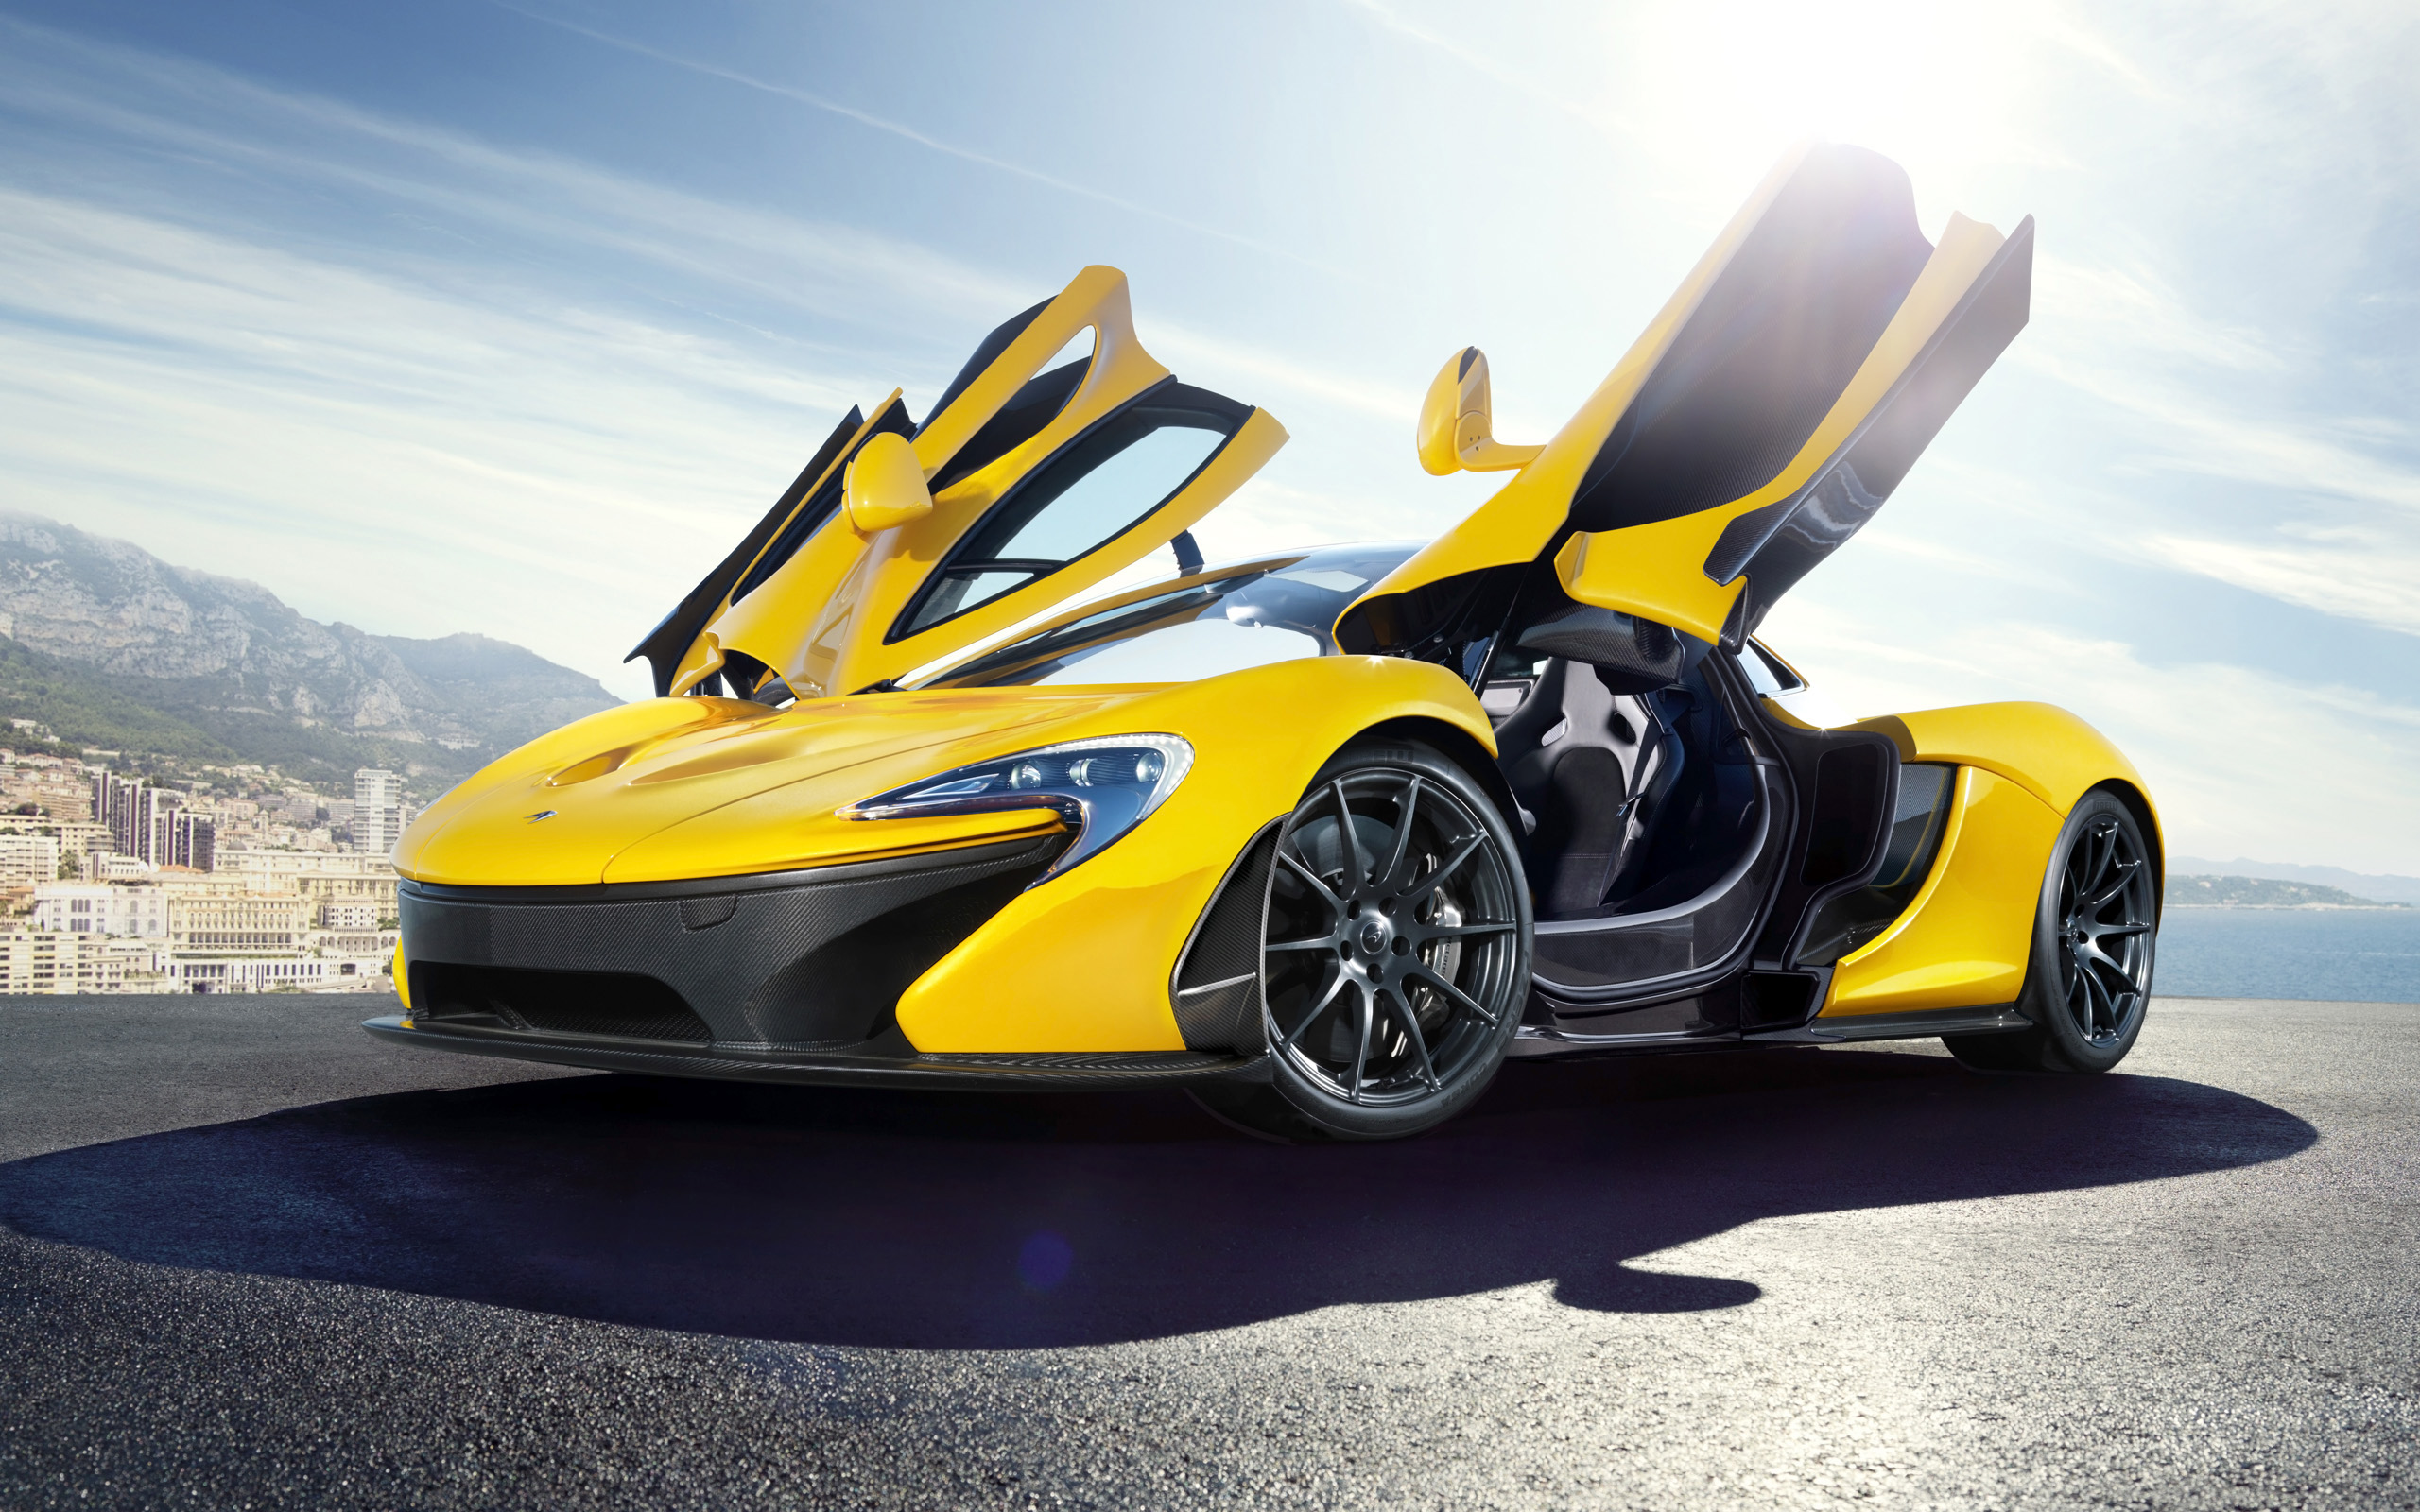 Cars Wallpapers: New McLaren Cars HD Wallpapers(High Resolution)